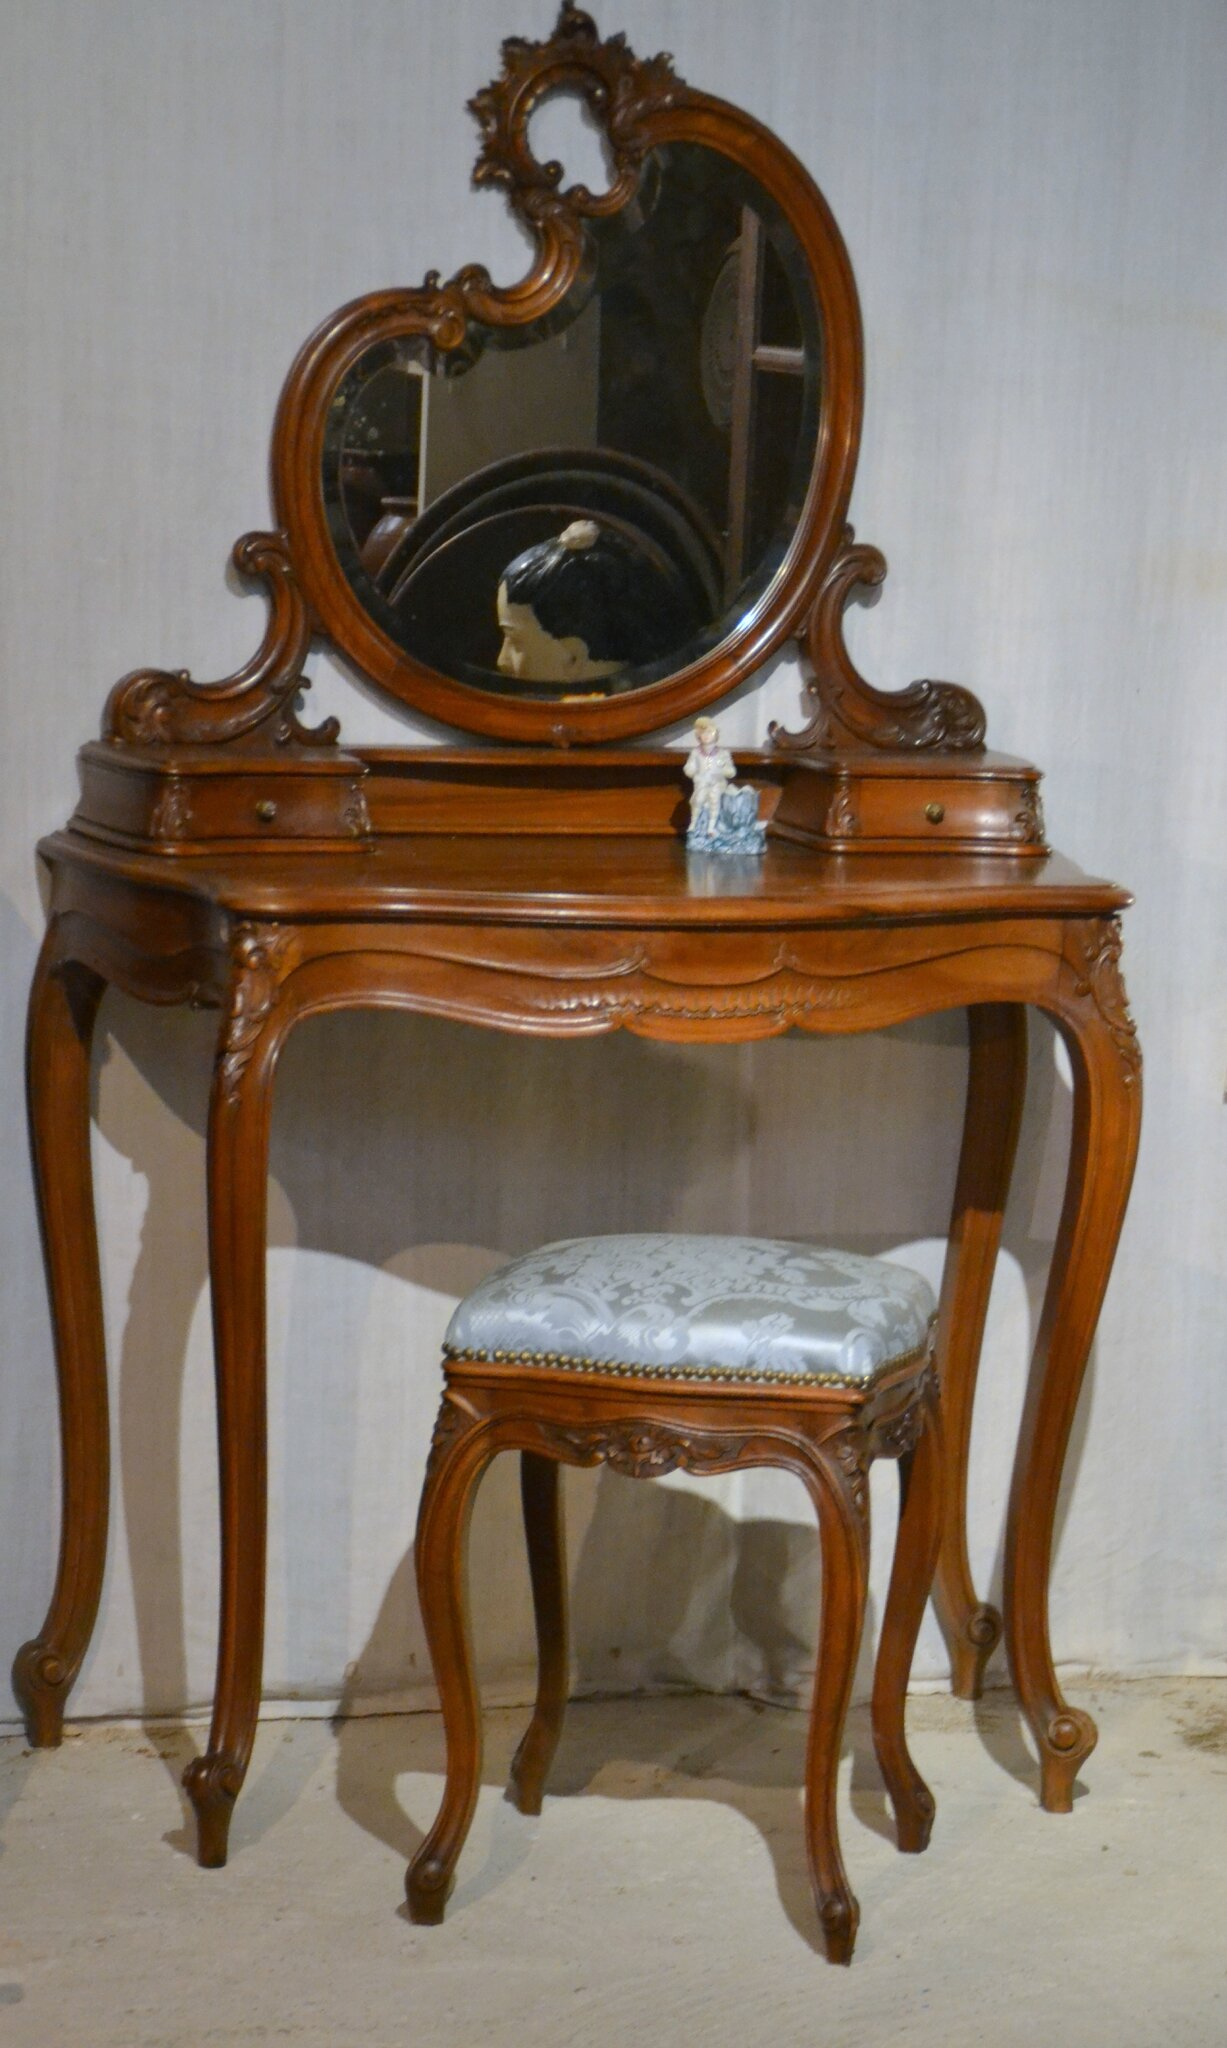 coiffeuse ancienne de style louis xv la broc du chat noir boutique. Black Bedroom Furniture Sets. Home Design Ideas